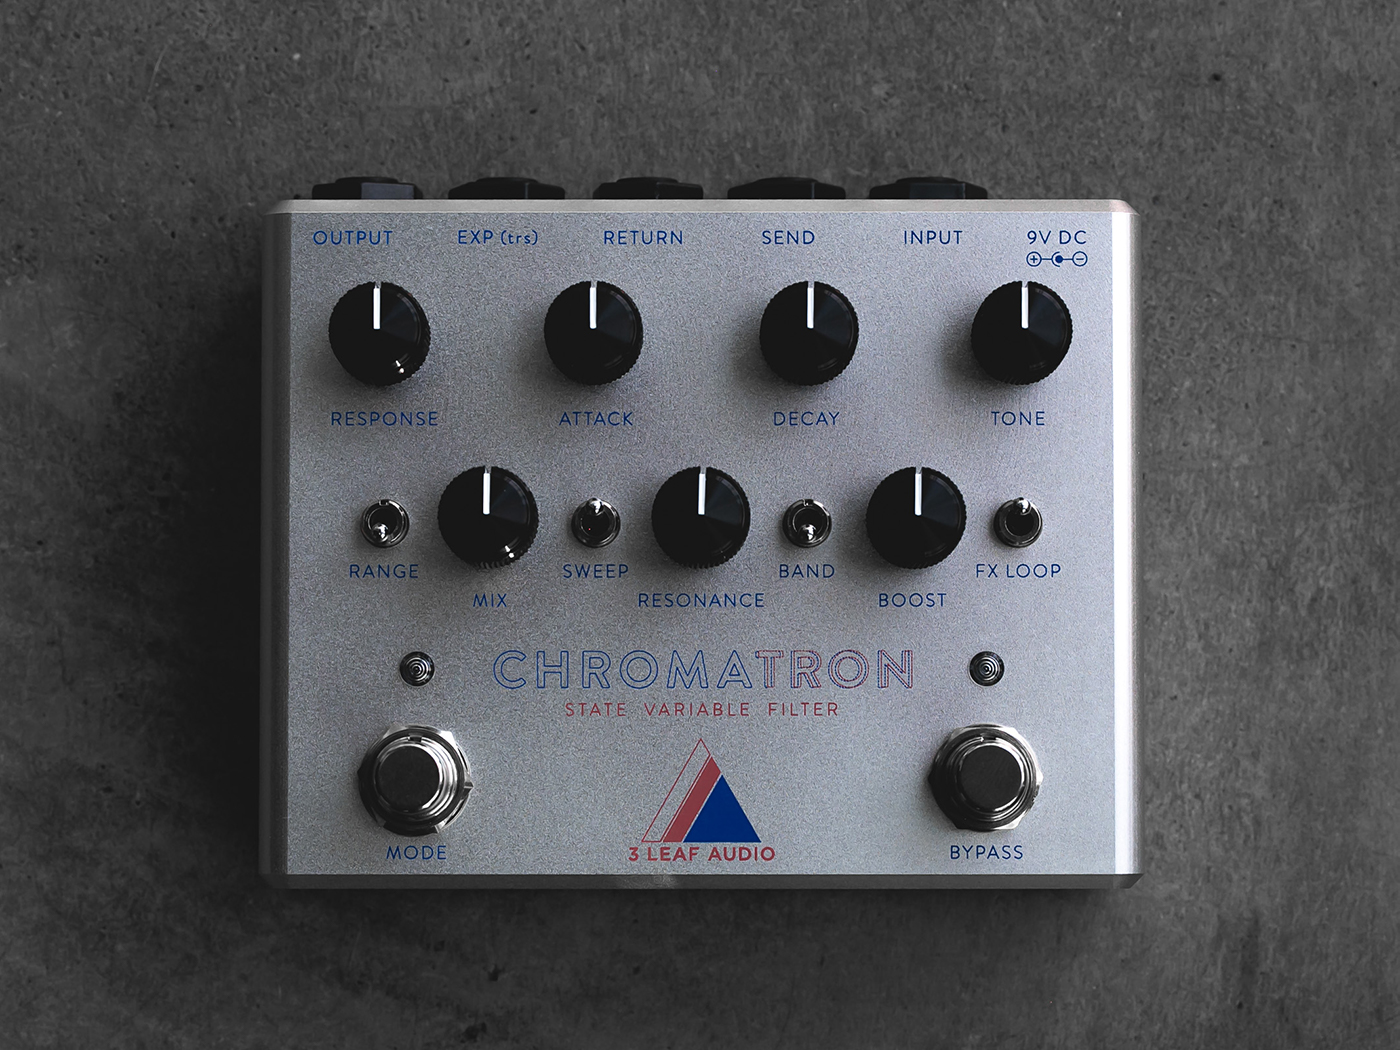 25 New Pedals And Effects Units December 2018 All A Frequency Doubler Effect For Electric Guitar 3 Leaf Audios Chromatron Is State Variable Filter That Can Take You From Old School Hendrix Esque Quacks To Futuristic Synth Soundscapes